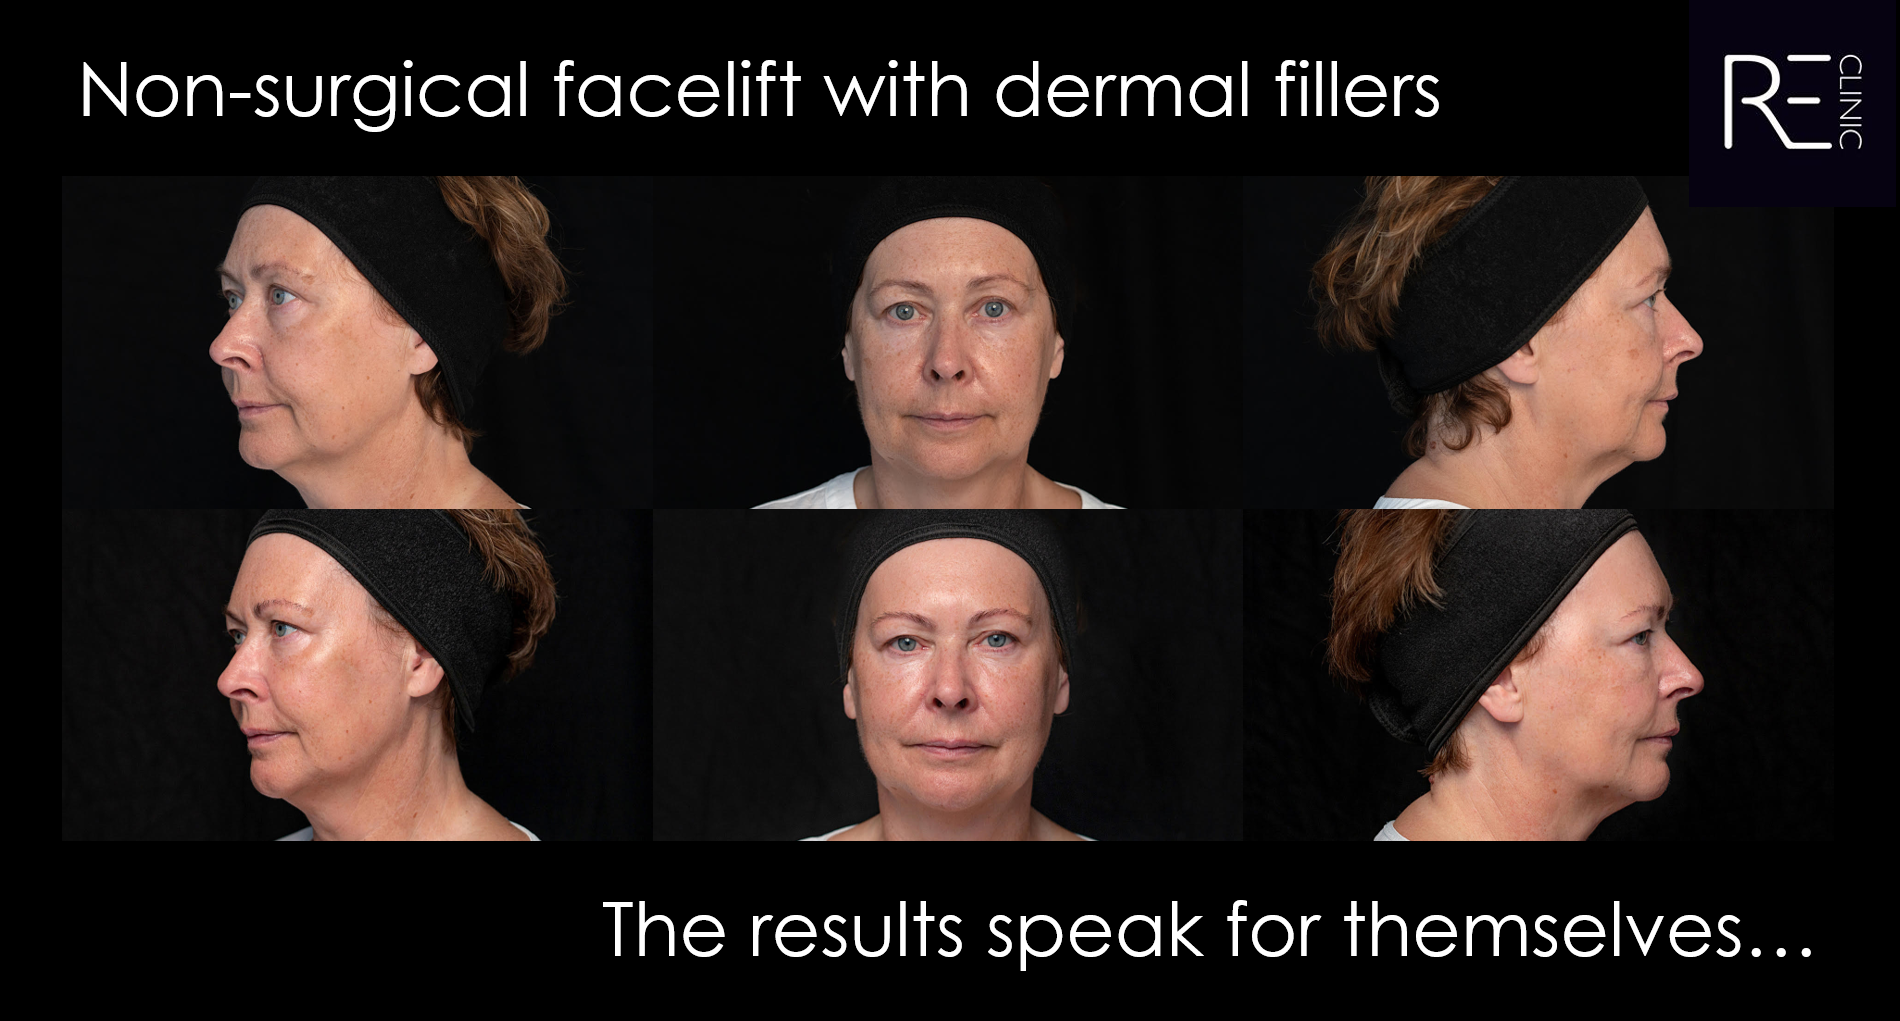 Non surgical facelift with dermal fillers